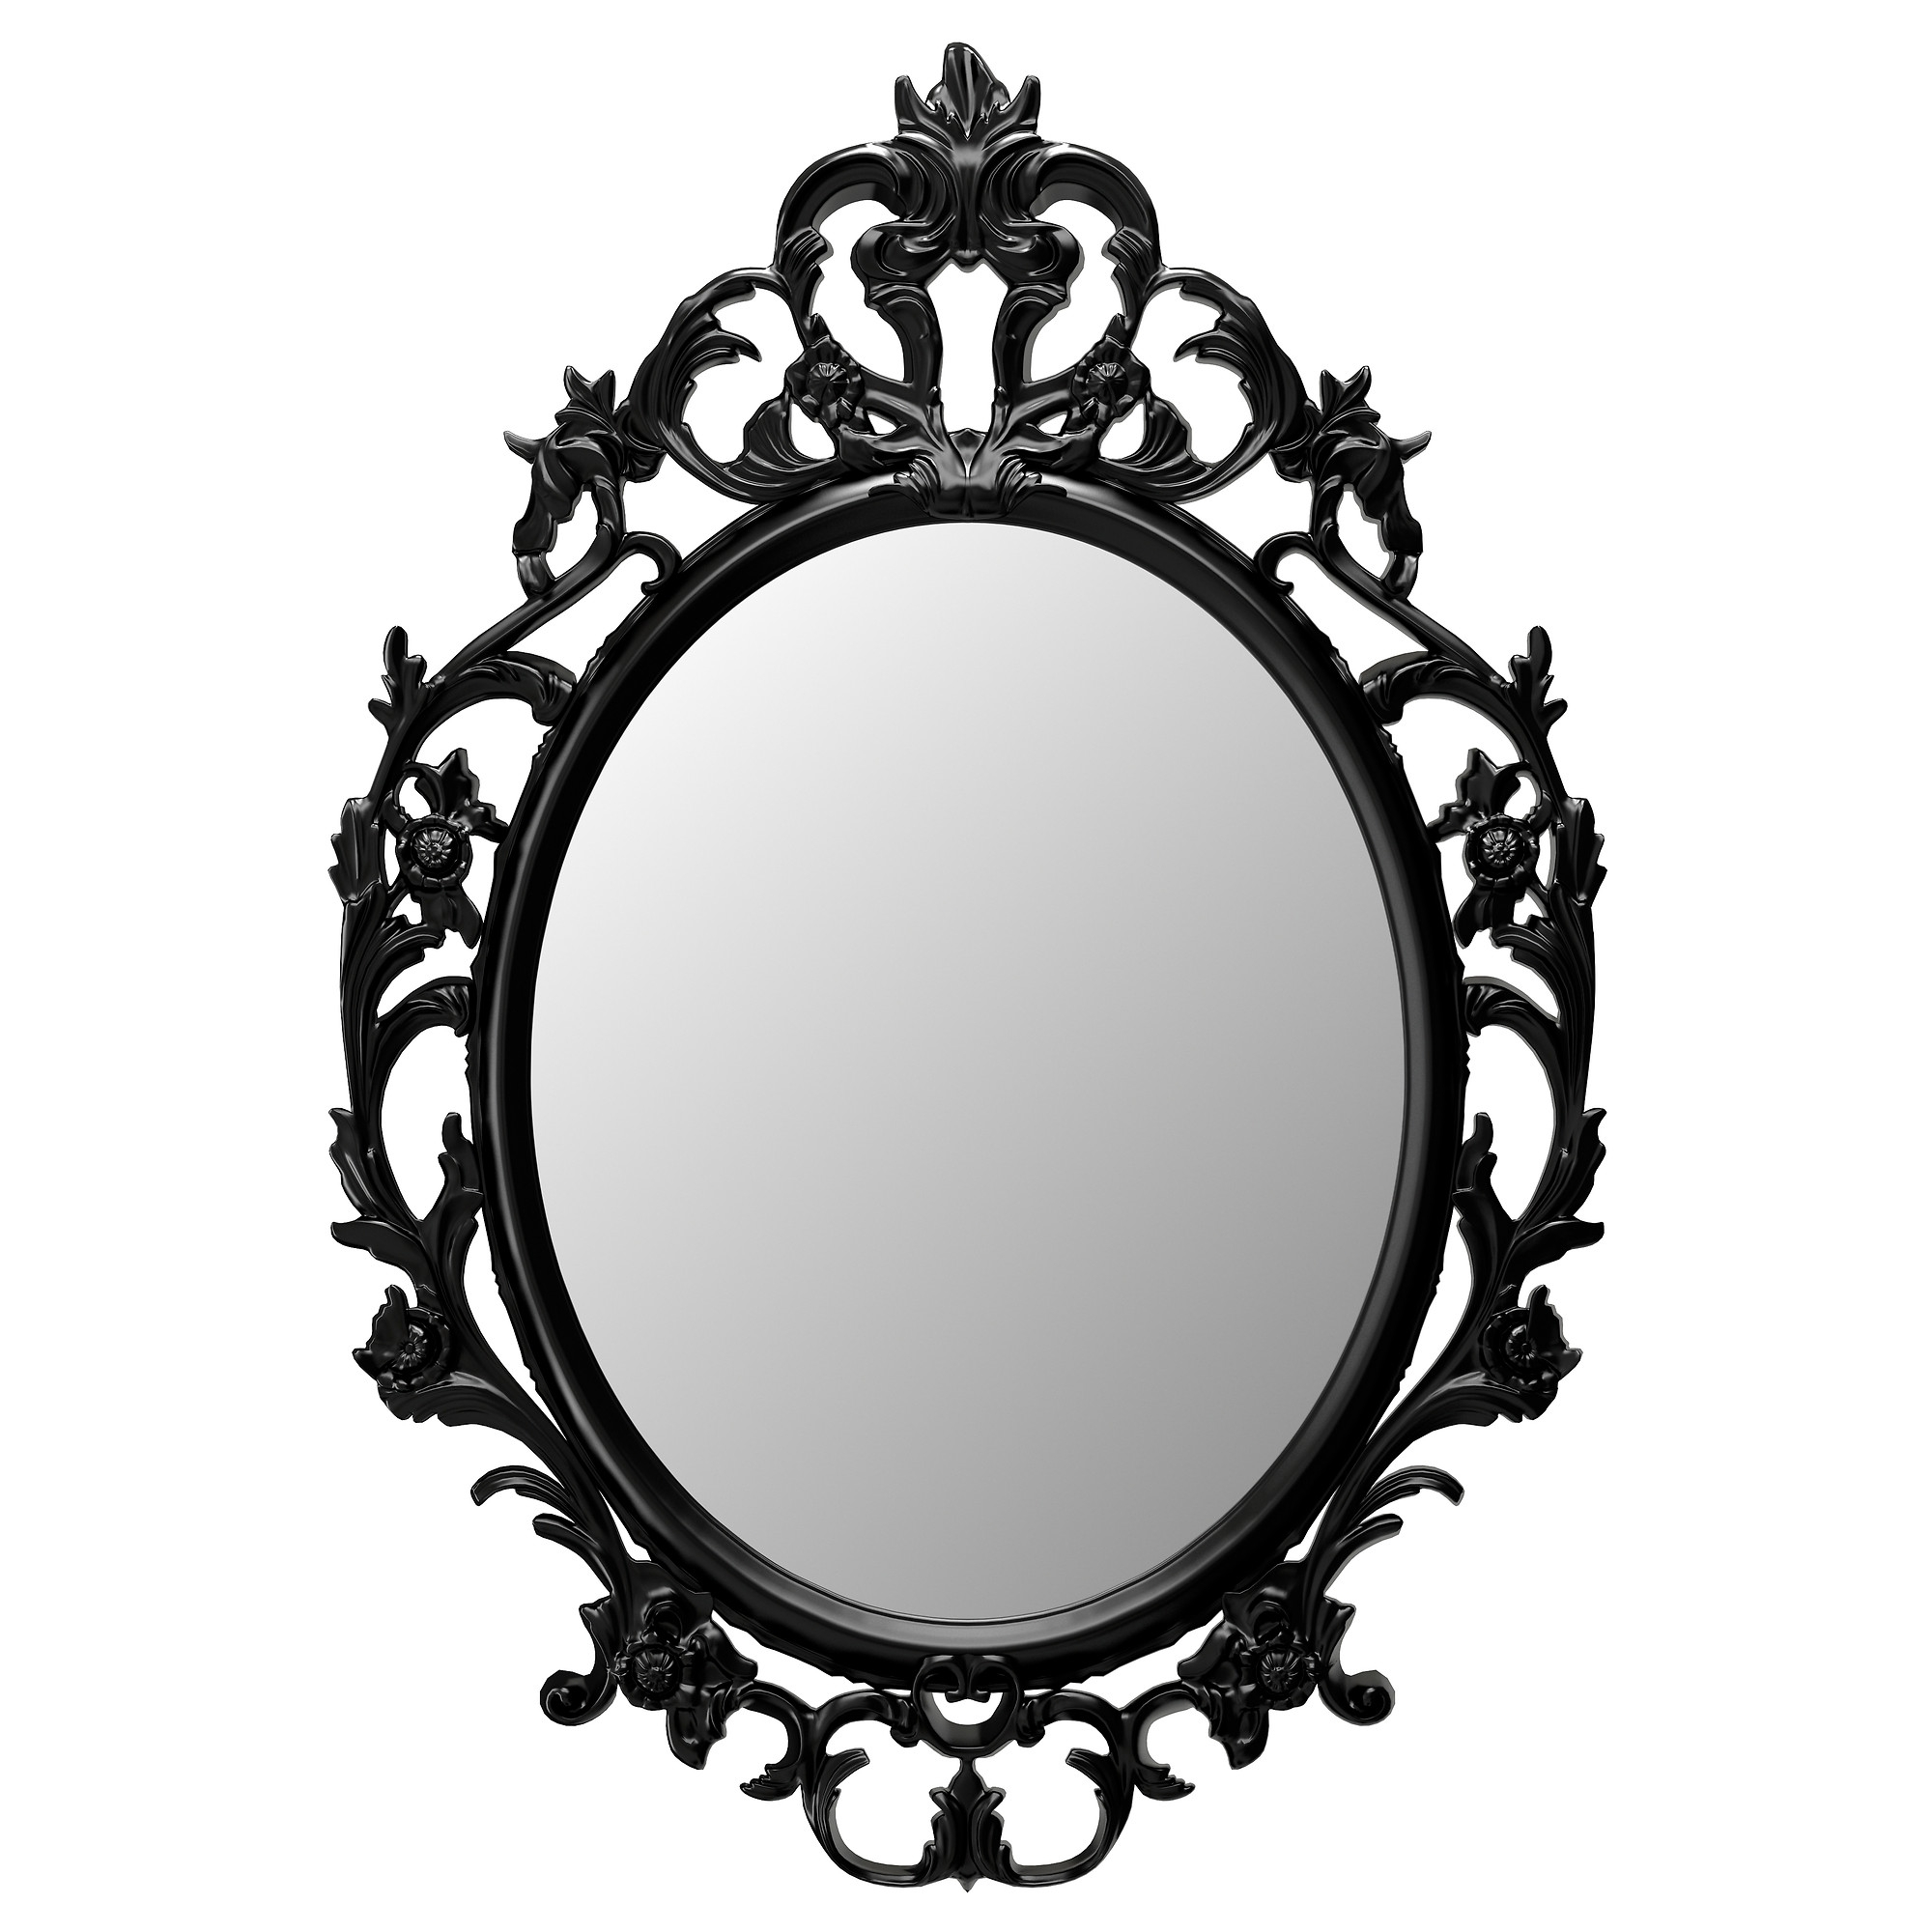 Ung Drill Mirror Ovalblack 59×85 Cm Ikea For Gothic Style Mirrors (Image 13 of 15)